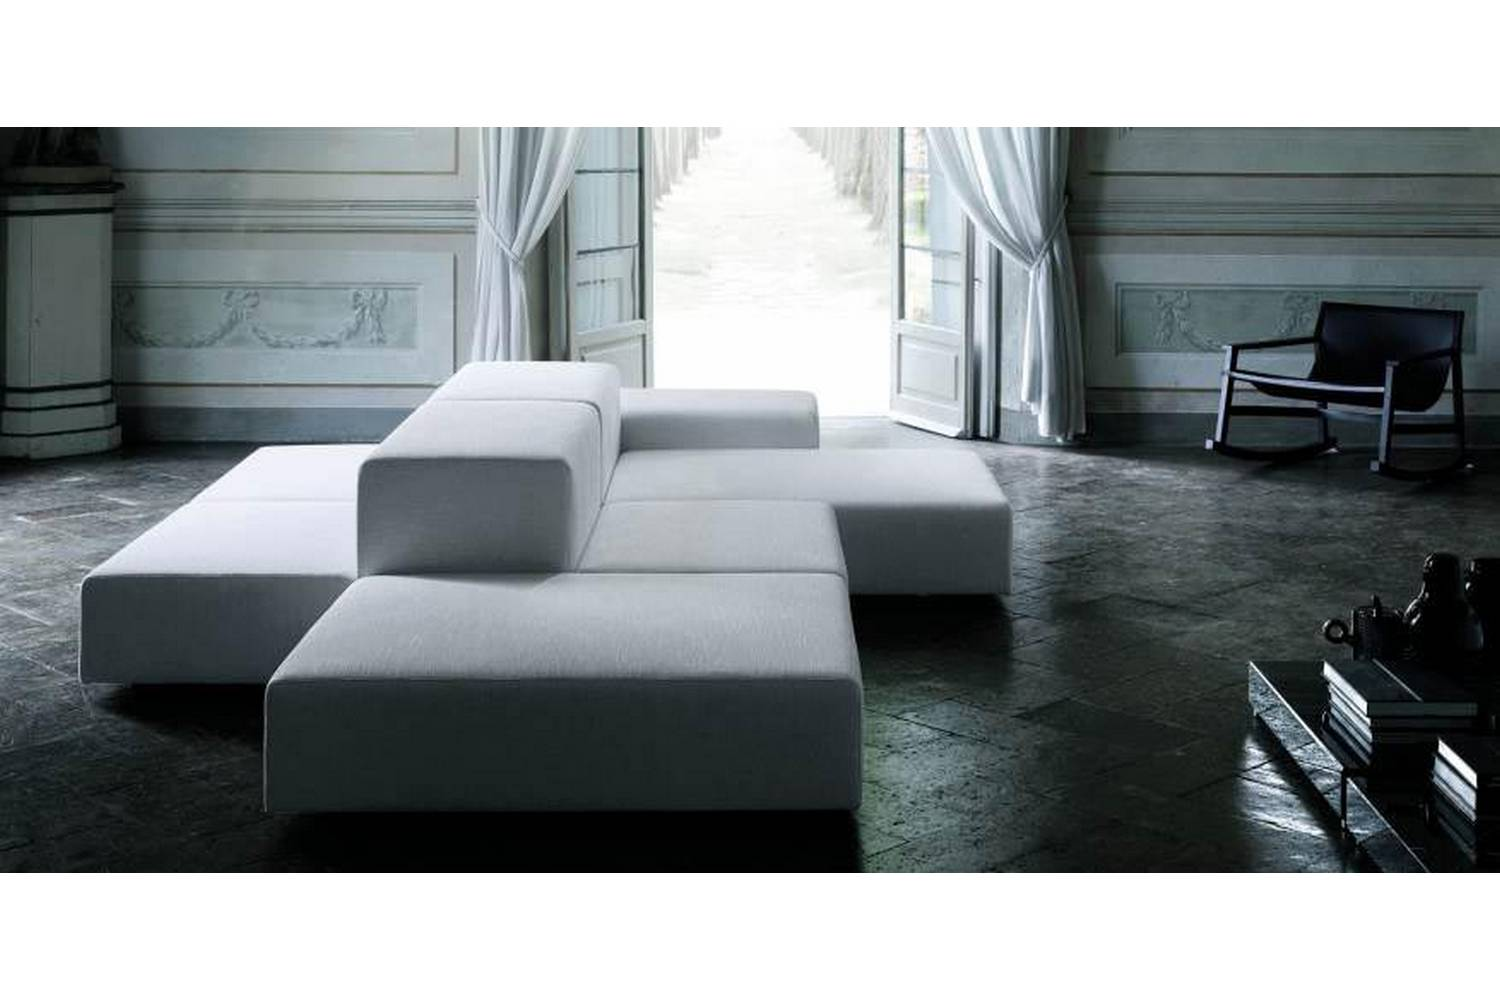 Living Divani The Wall Sofa Extra Wall Sofa By Piero Lissoni For Living Divani Space Furniture